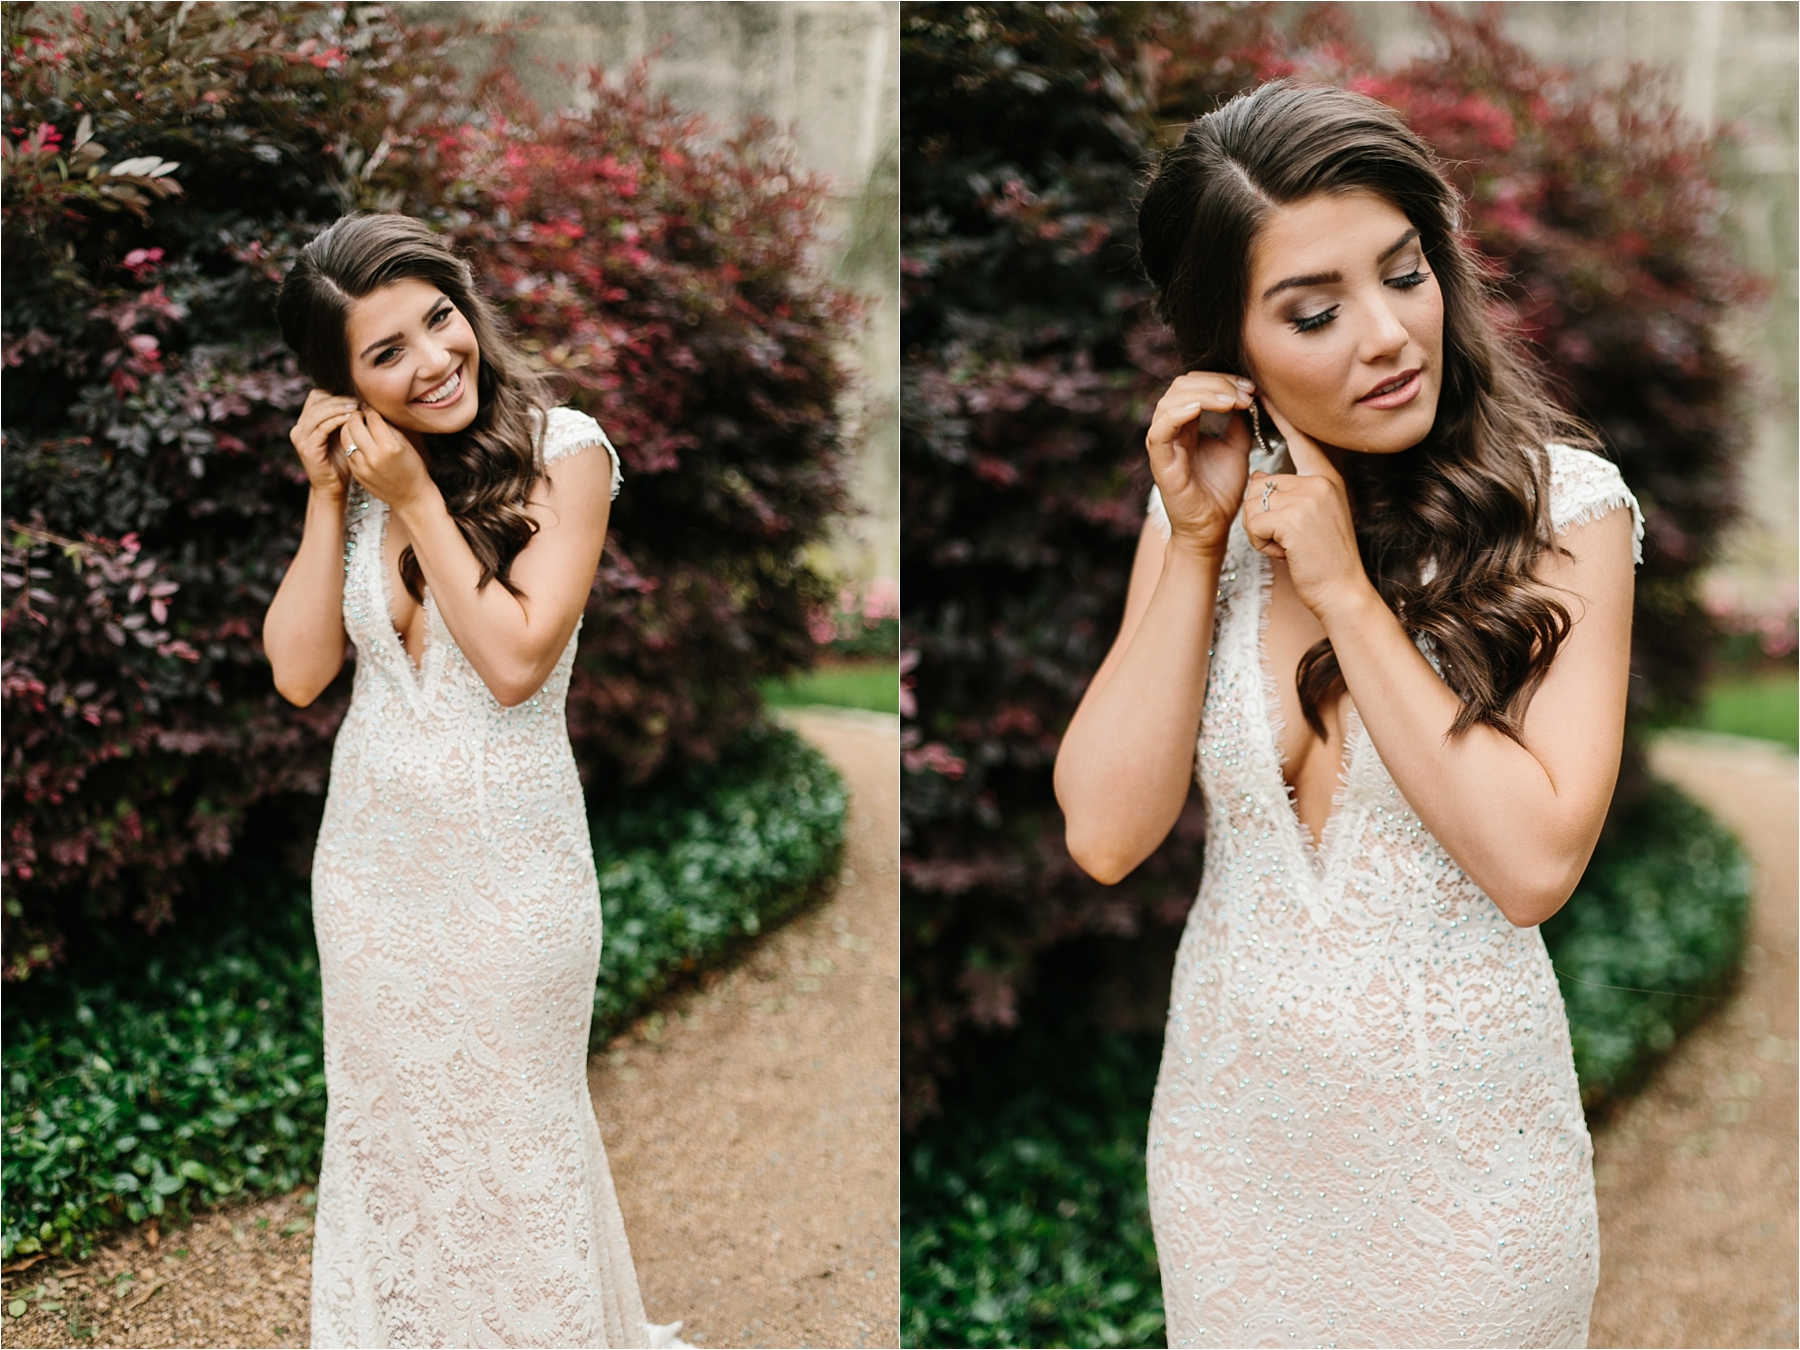 Devyn + Caden __ a Dallas Arboretum Garden Style Wedding by North Texas Wedding Photographer Rachel Meagan Photography __ 007